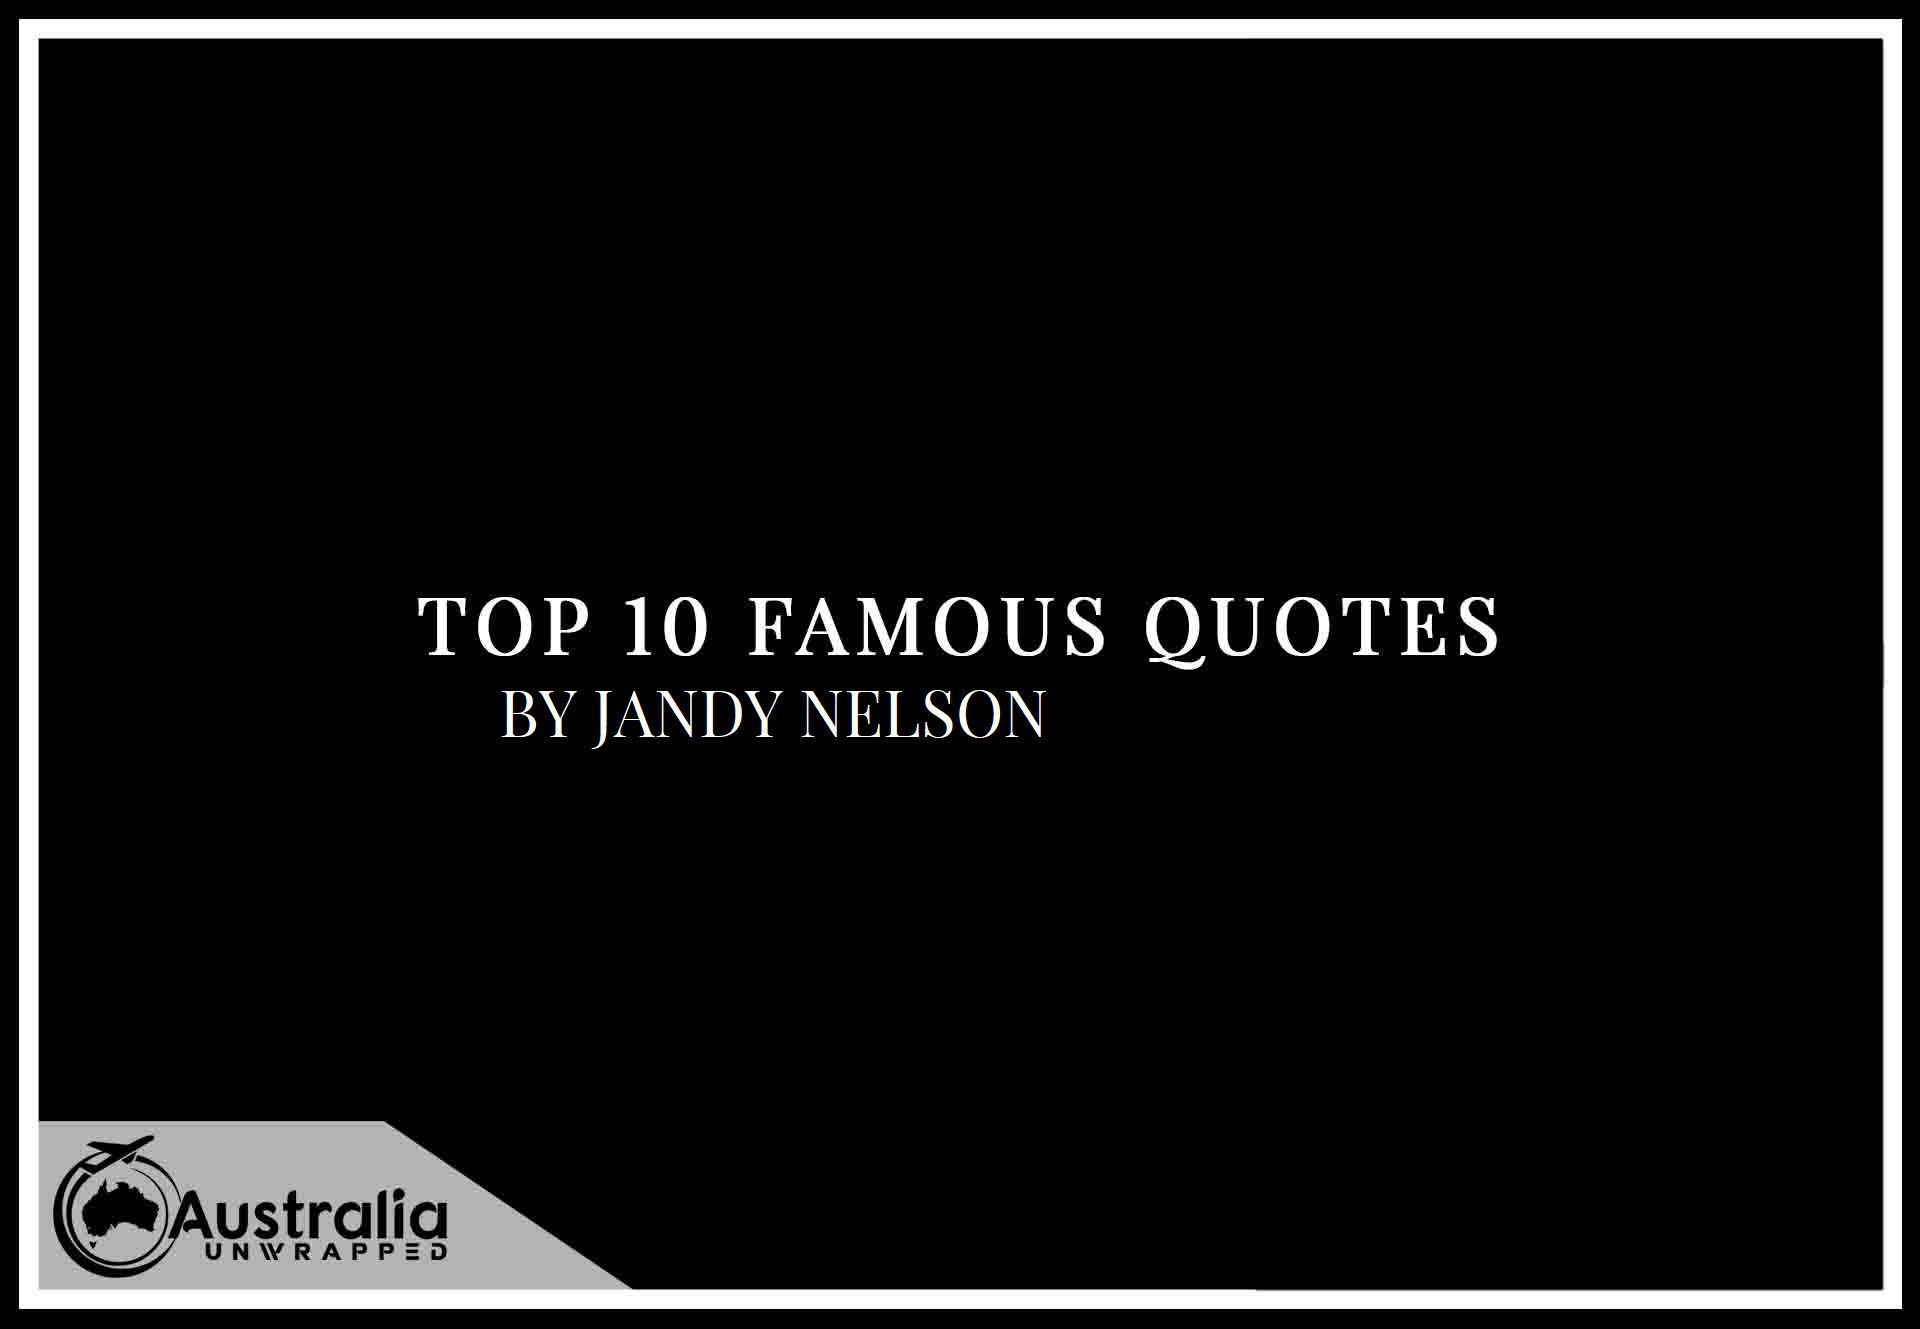 Top 10 Famous Quotes by Author Jandy Nelson